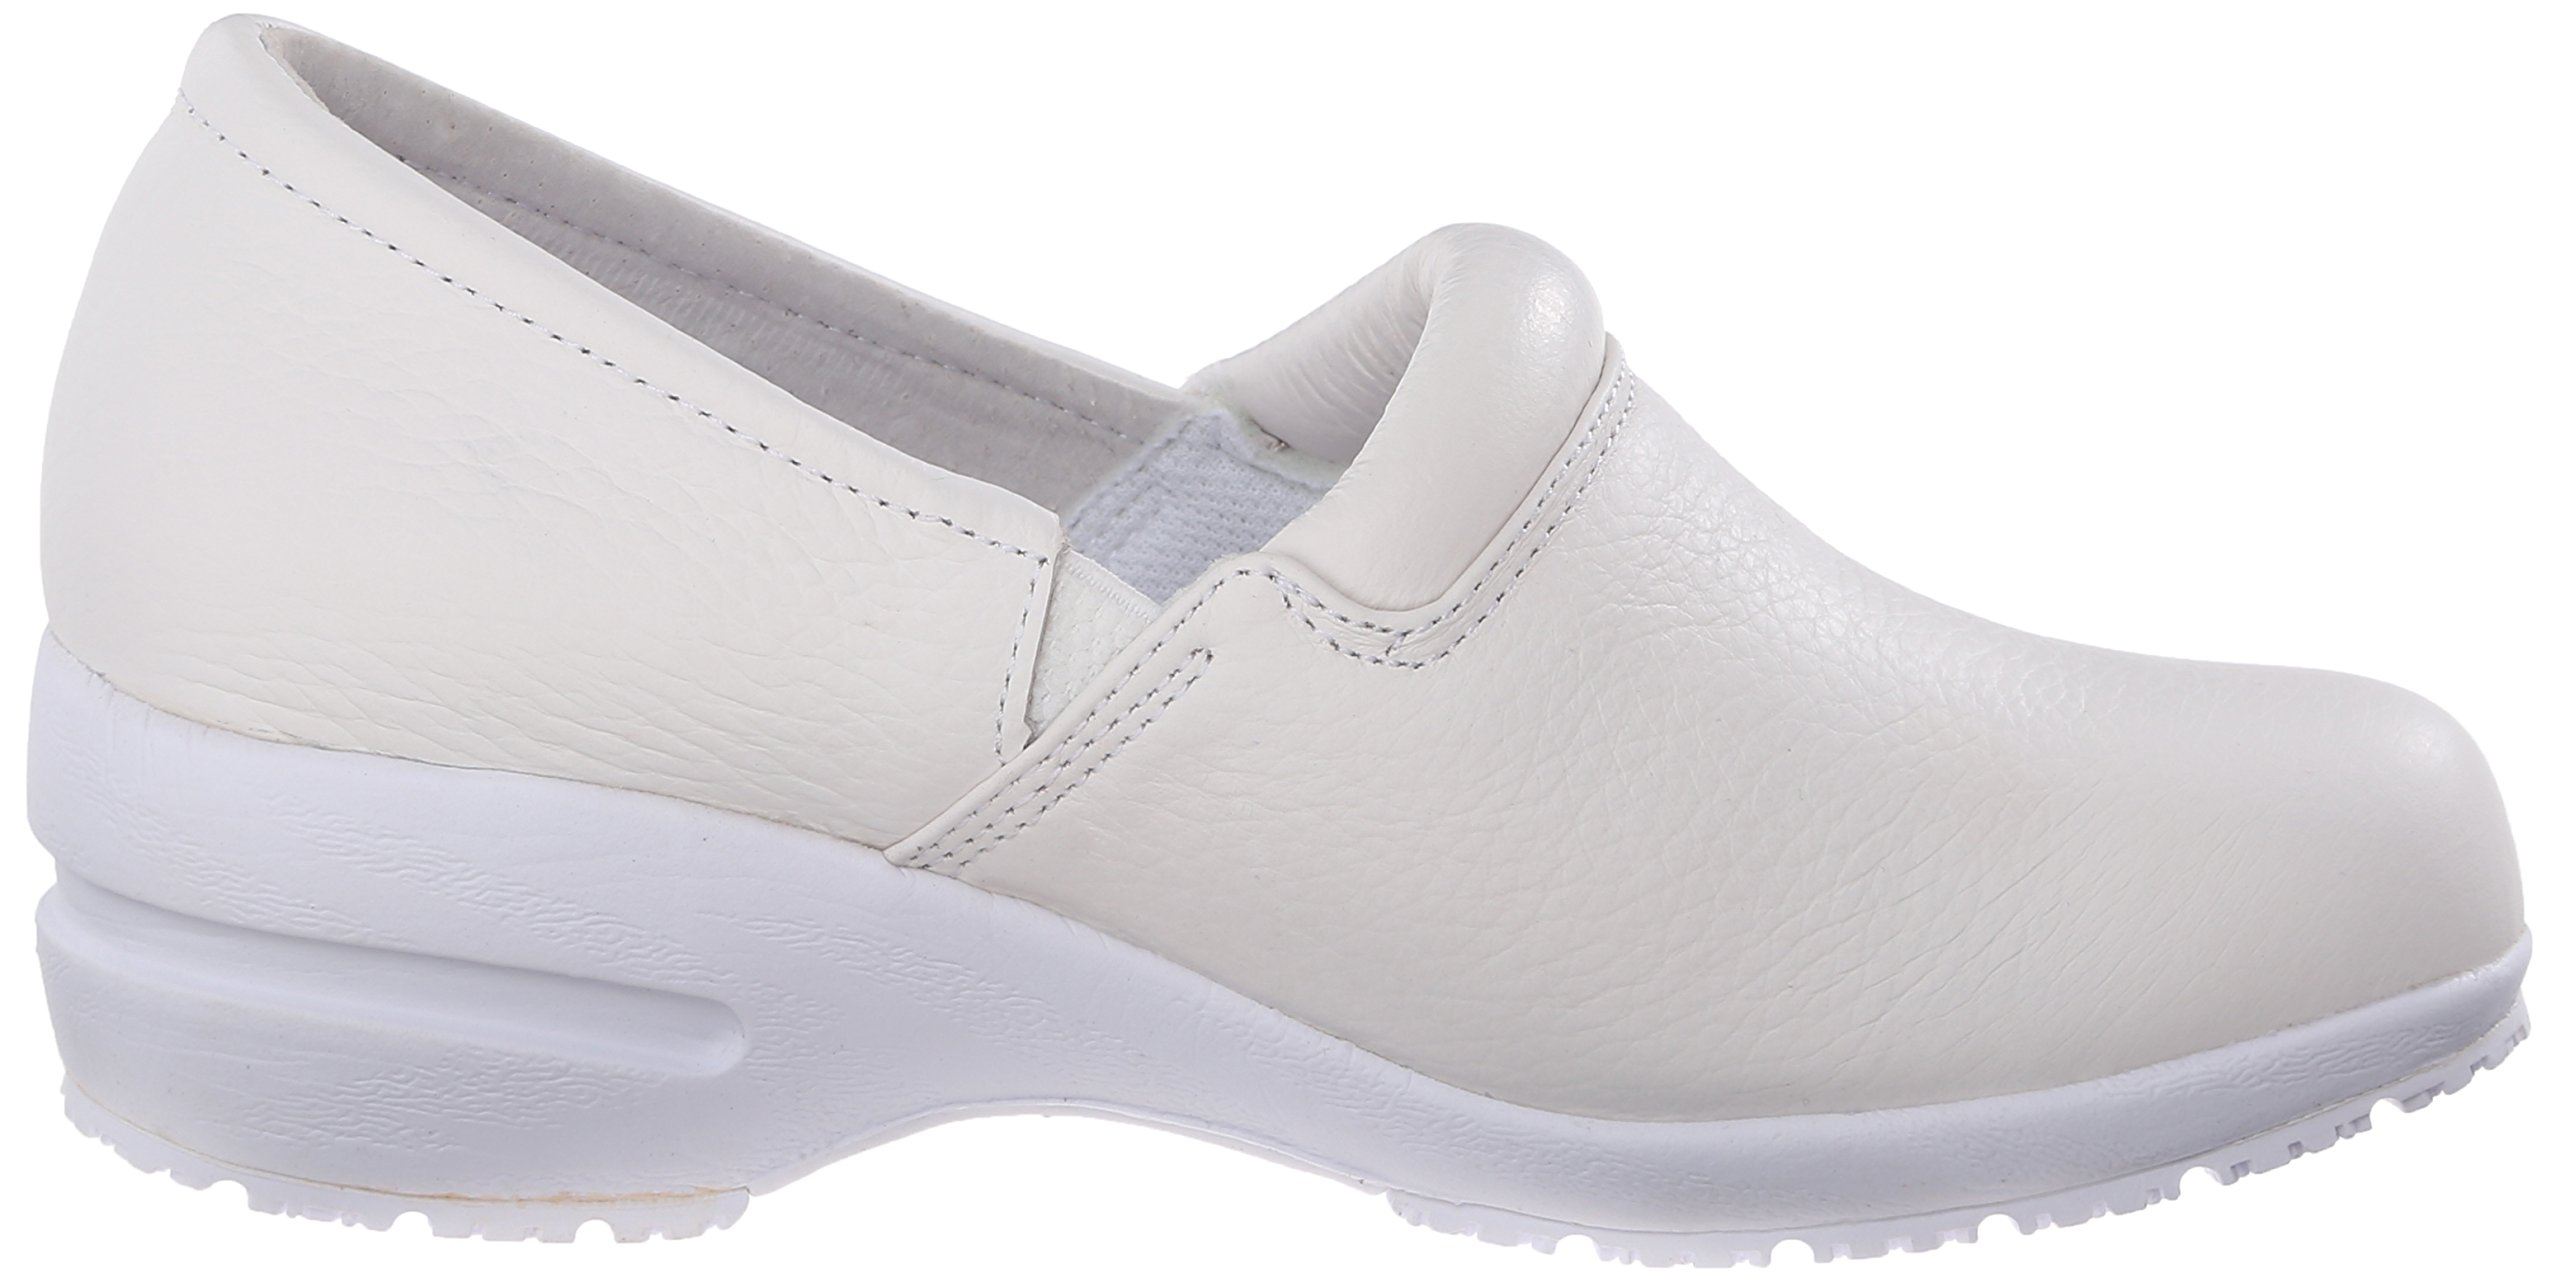 Cherokee Women's Patricia Work Shoe, White, 8 M US by Cherokee (Image #7)